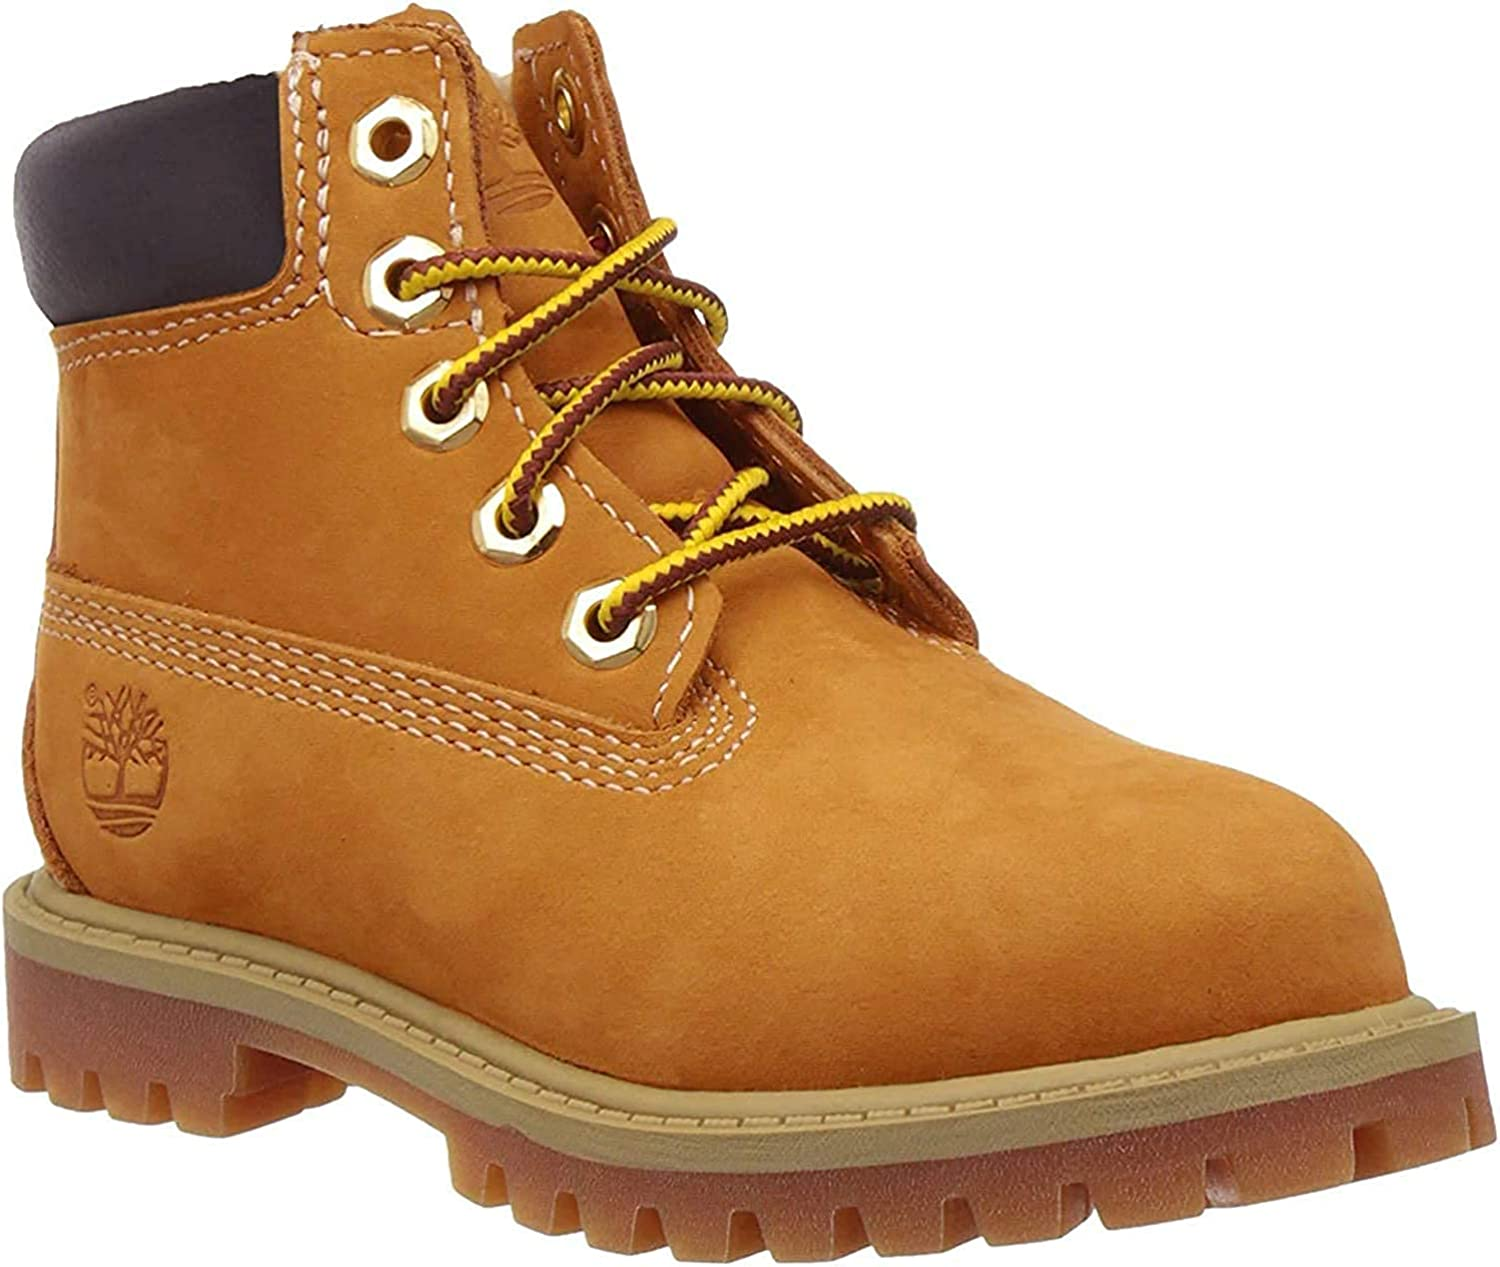 "Timberland Little Kid 6"" Premium Waterproof Boot"